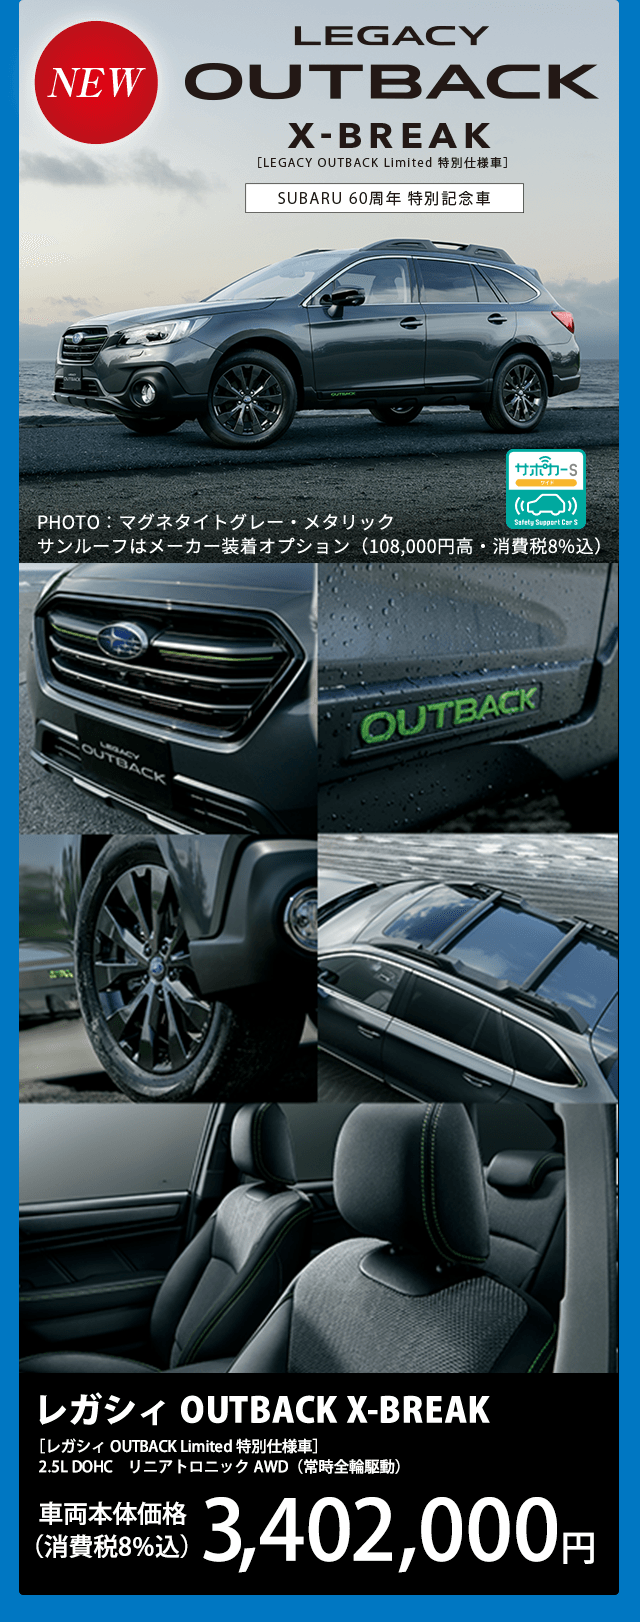 LEGACY OUTBACK X-BREAK [LEGACY OUTBACK Limited 特別仕様車] SUBARU 60周年 特別記念車 PHOTO:マグネタイトグレー・メタリック サンルーフはメーカー装着オプション(108,000円高・消費税8%込)レガシィ OUTBACK X-BREAK [レガシィ OUTBACK Limited 特別仕様車] 2.5L DOHC リニアトロニック AWD(常時全輪駆動)車両本体価格(消費税8%込)3,402,000円